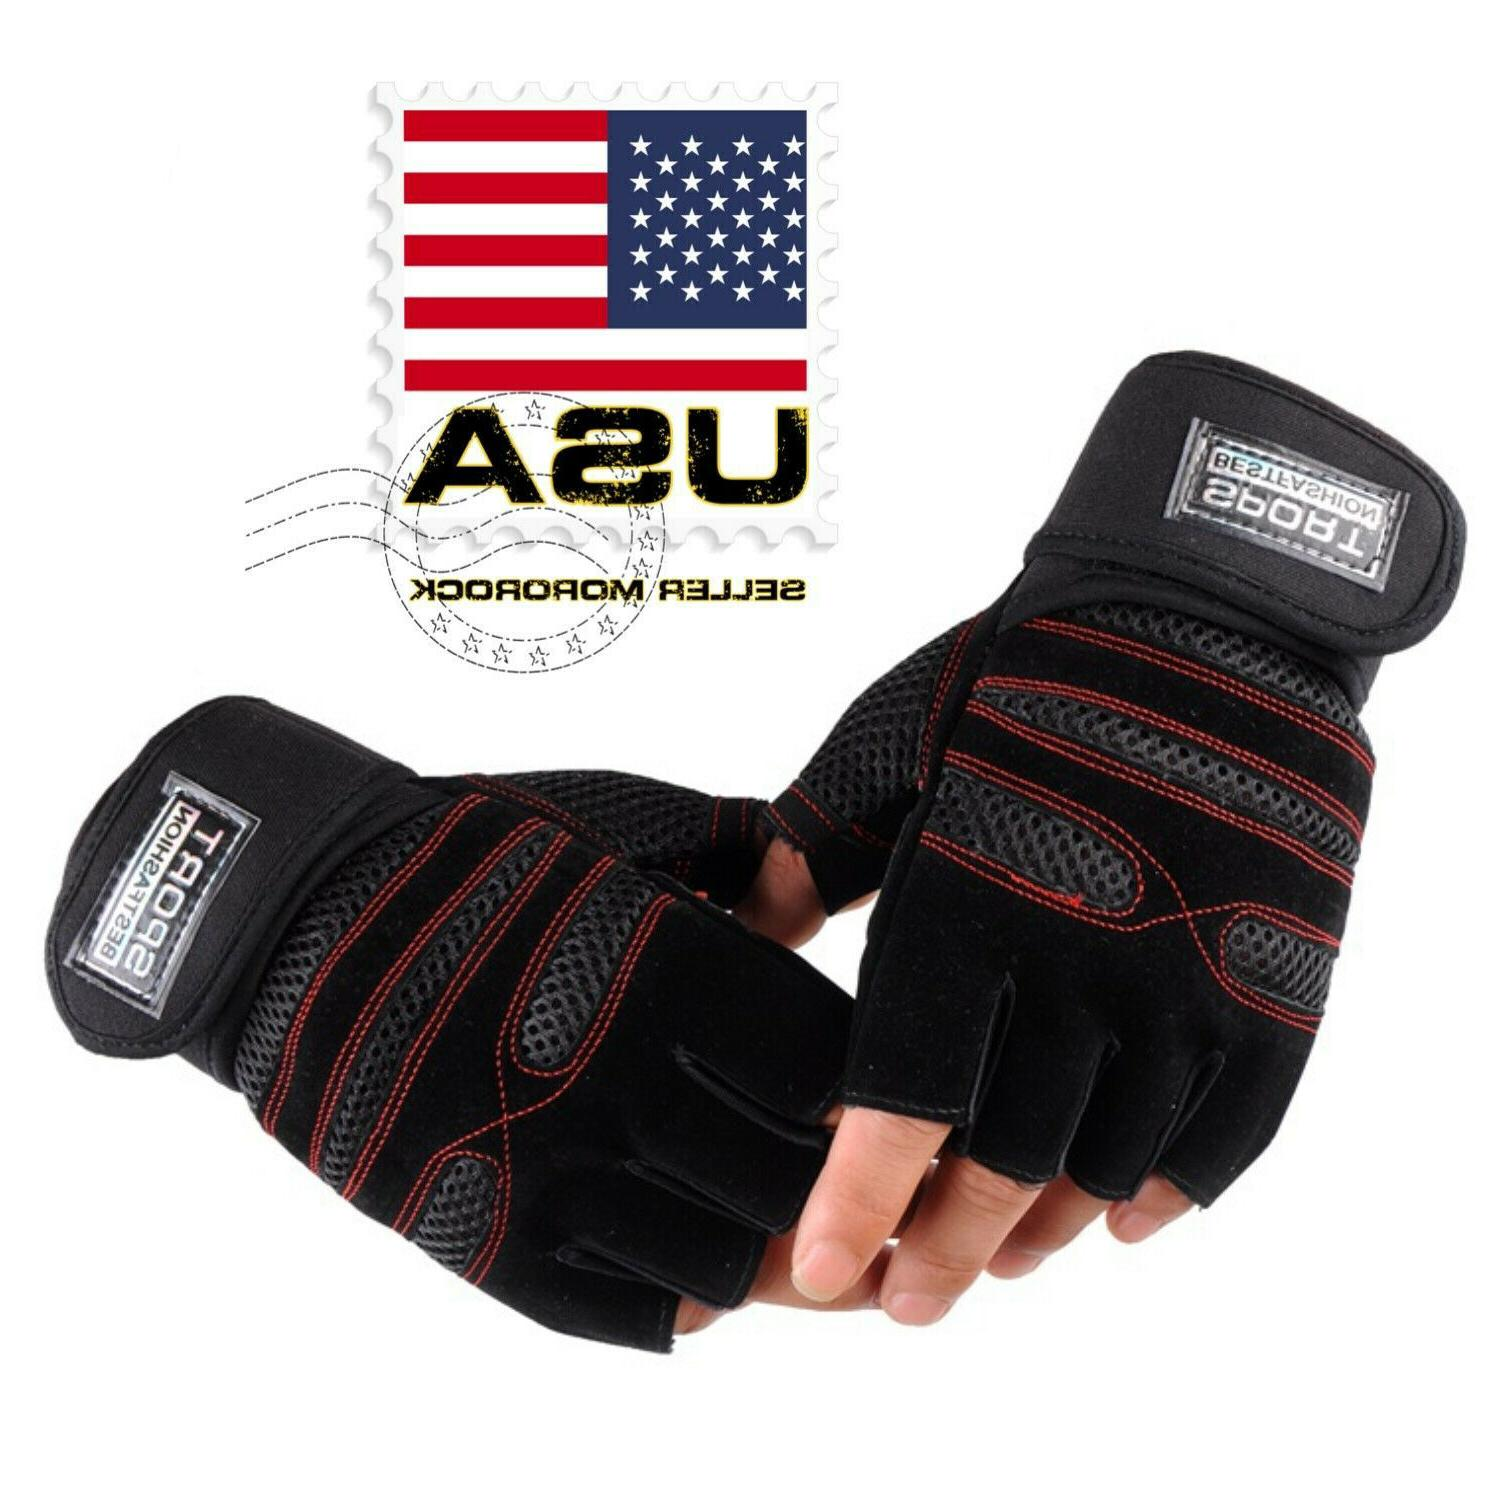 wrist wrap training sports fitness workout exercise